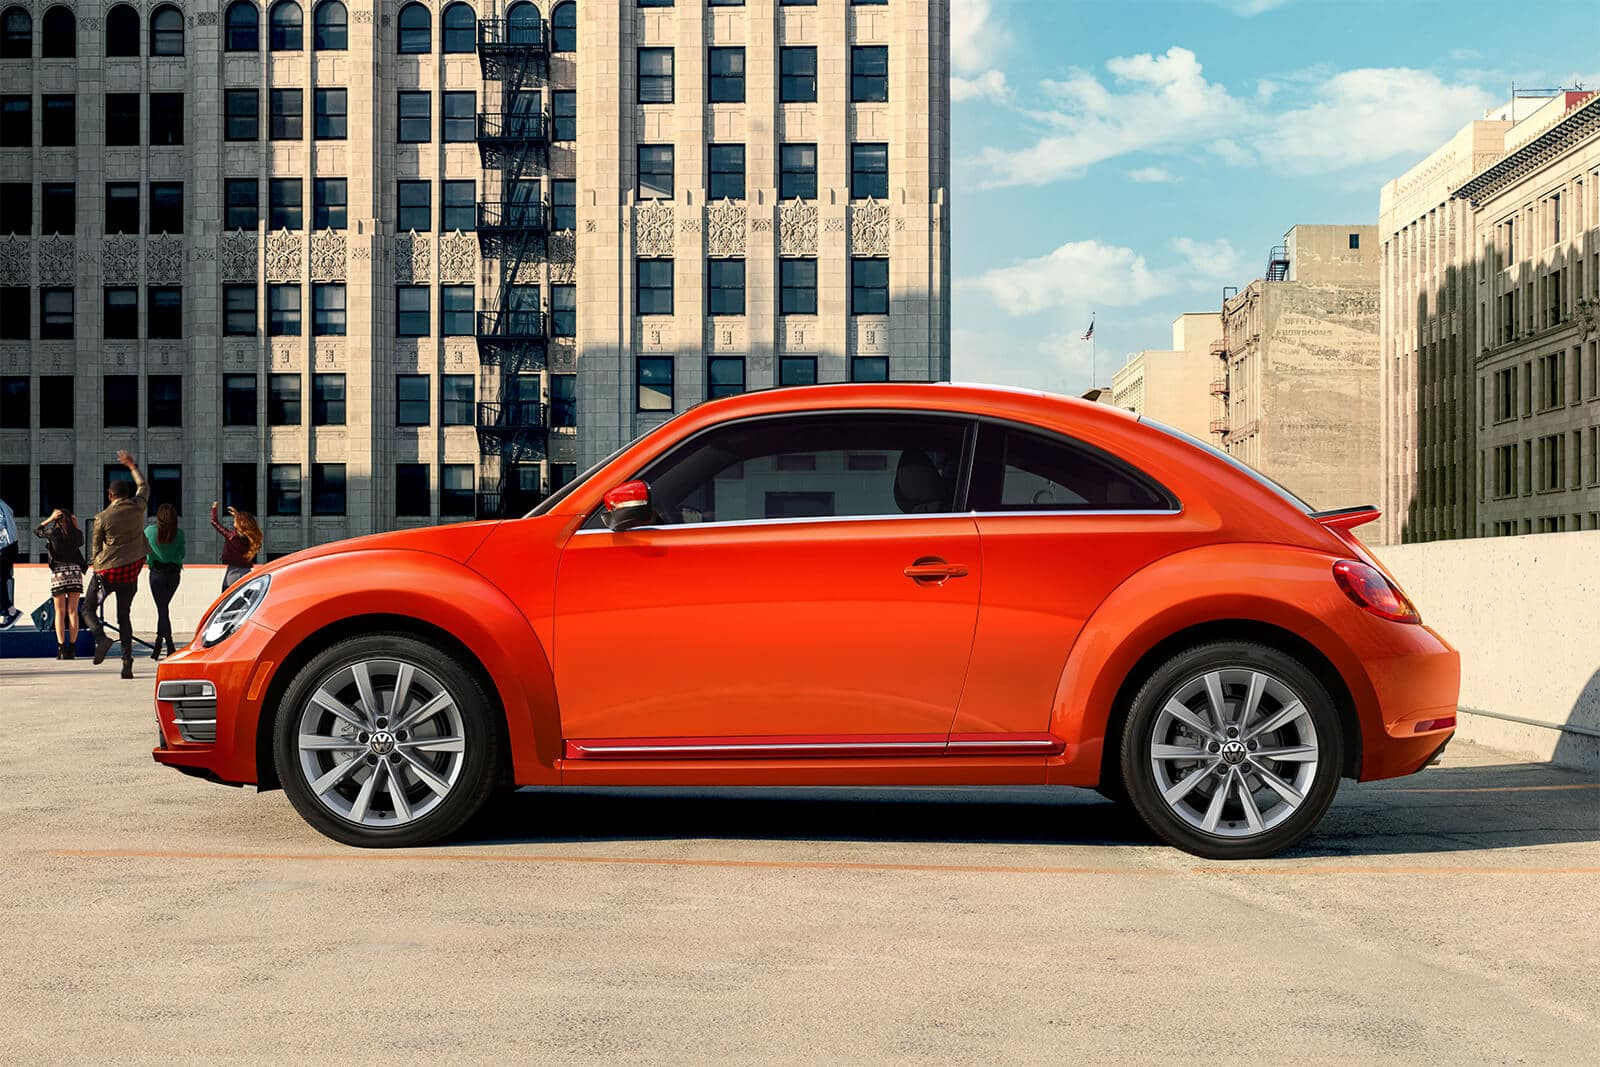 2019 VW Beetle Side View